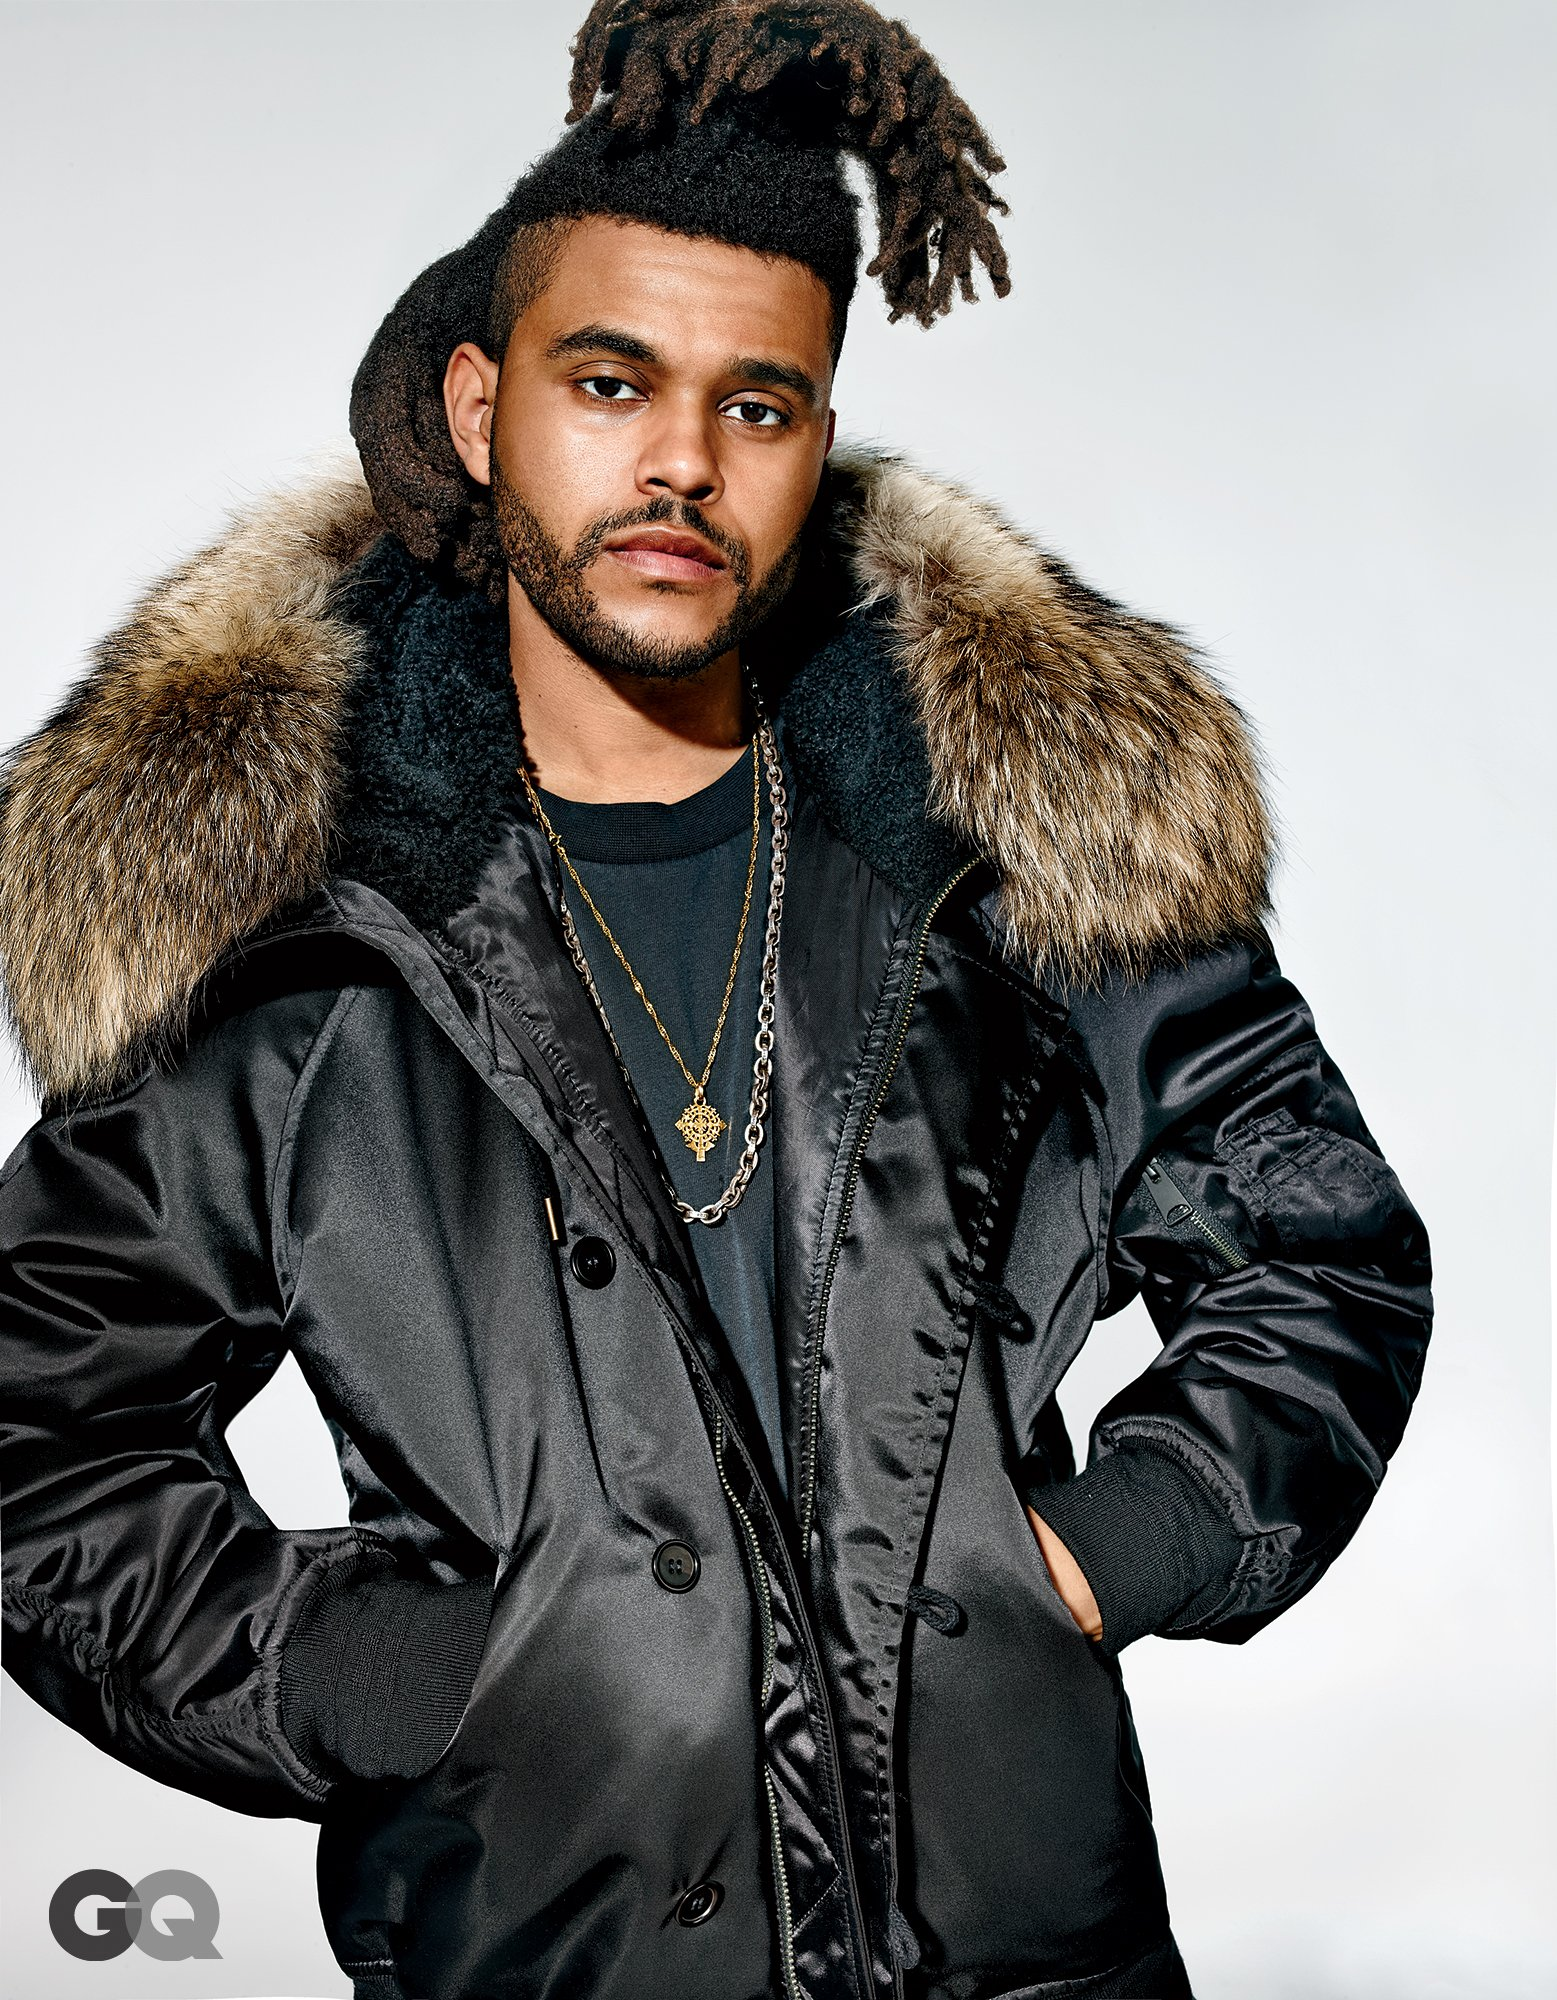 The Weeknd Teases Kanye West's Yeezy Season 1 Collection in GQ